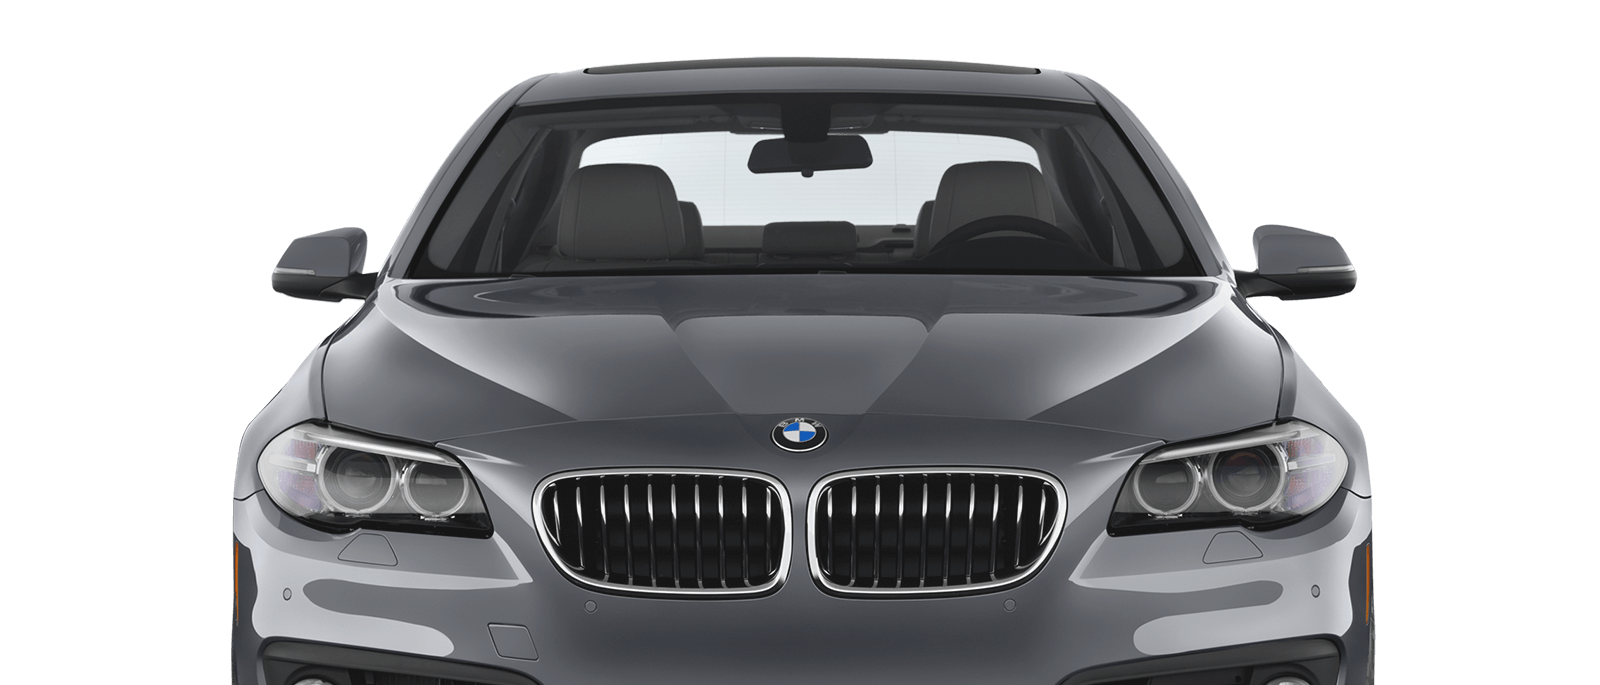 Bmw 528i Car Rental Exotic Car Collection By Enterprise